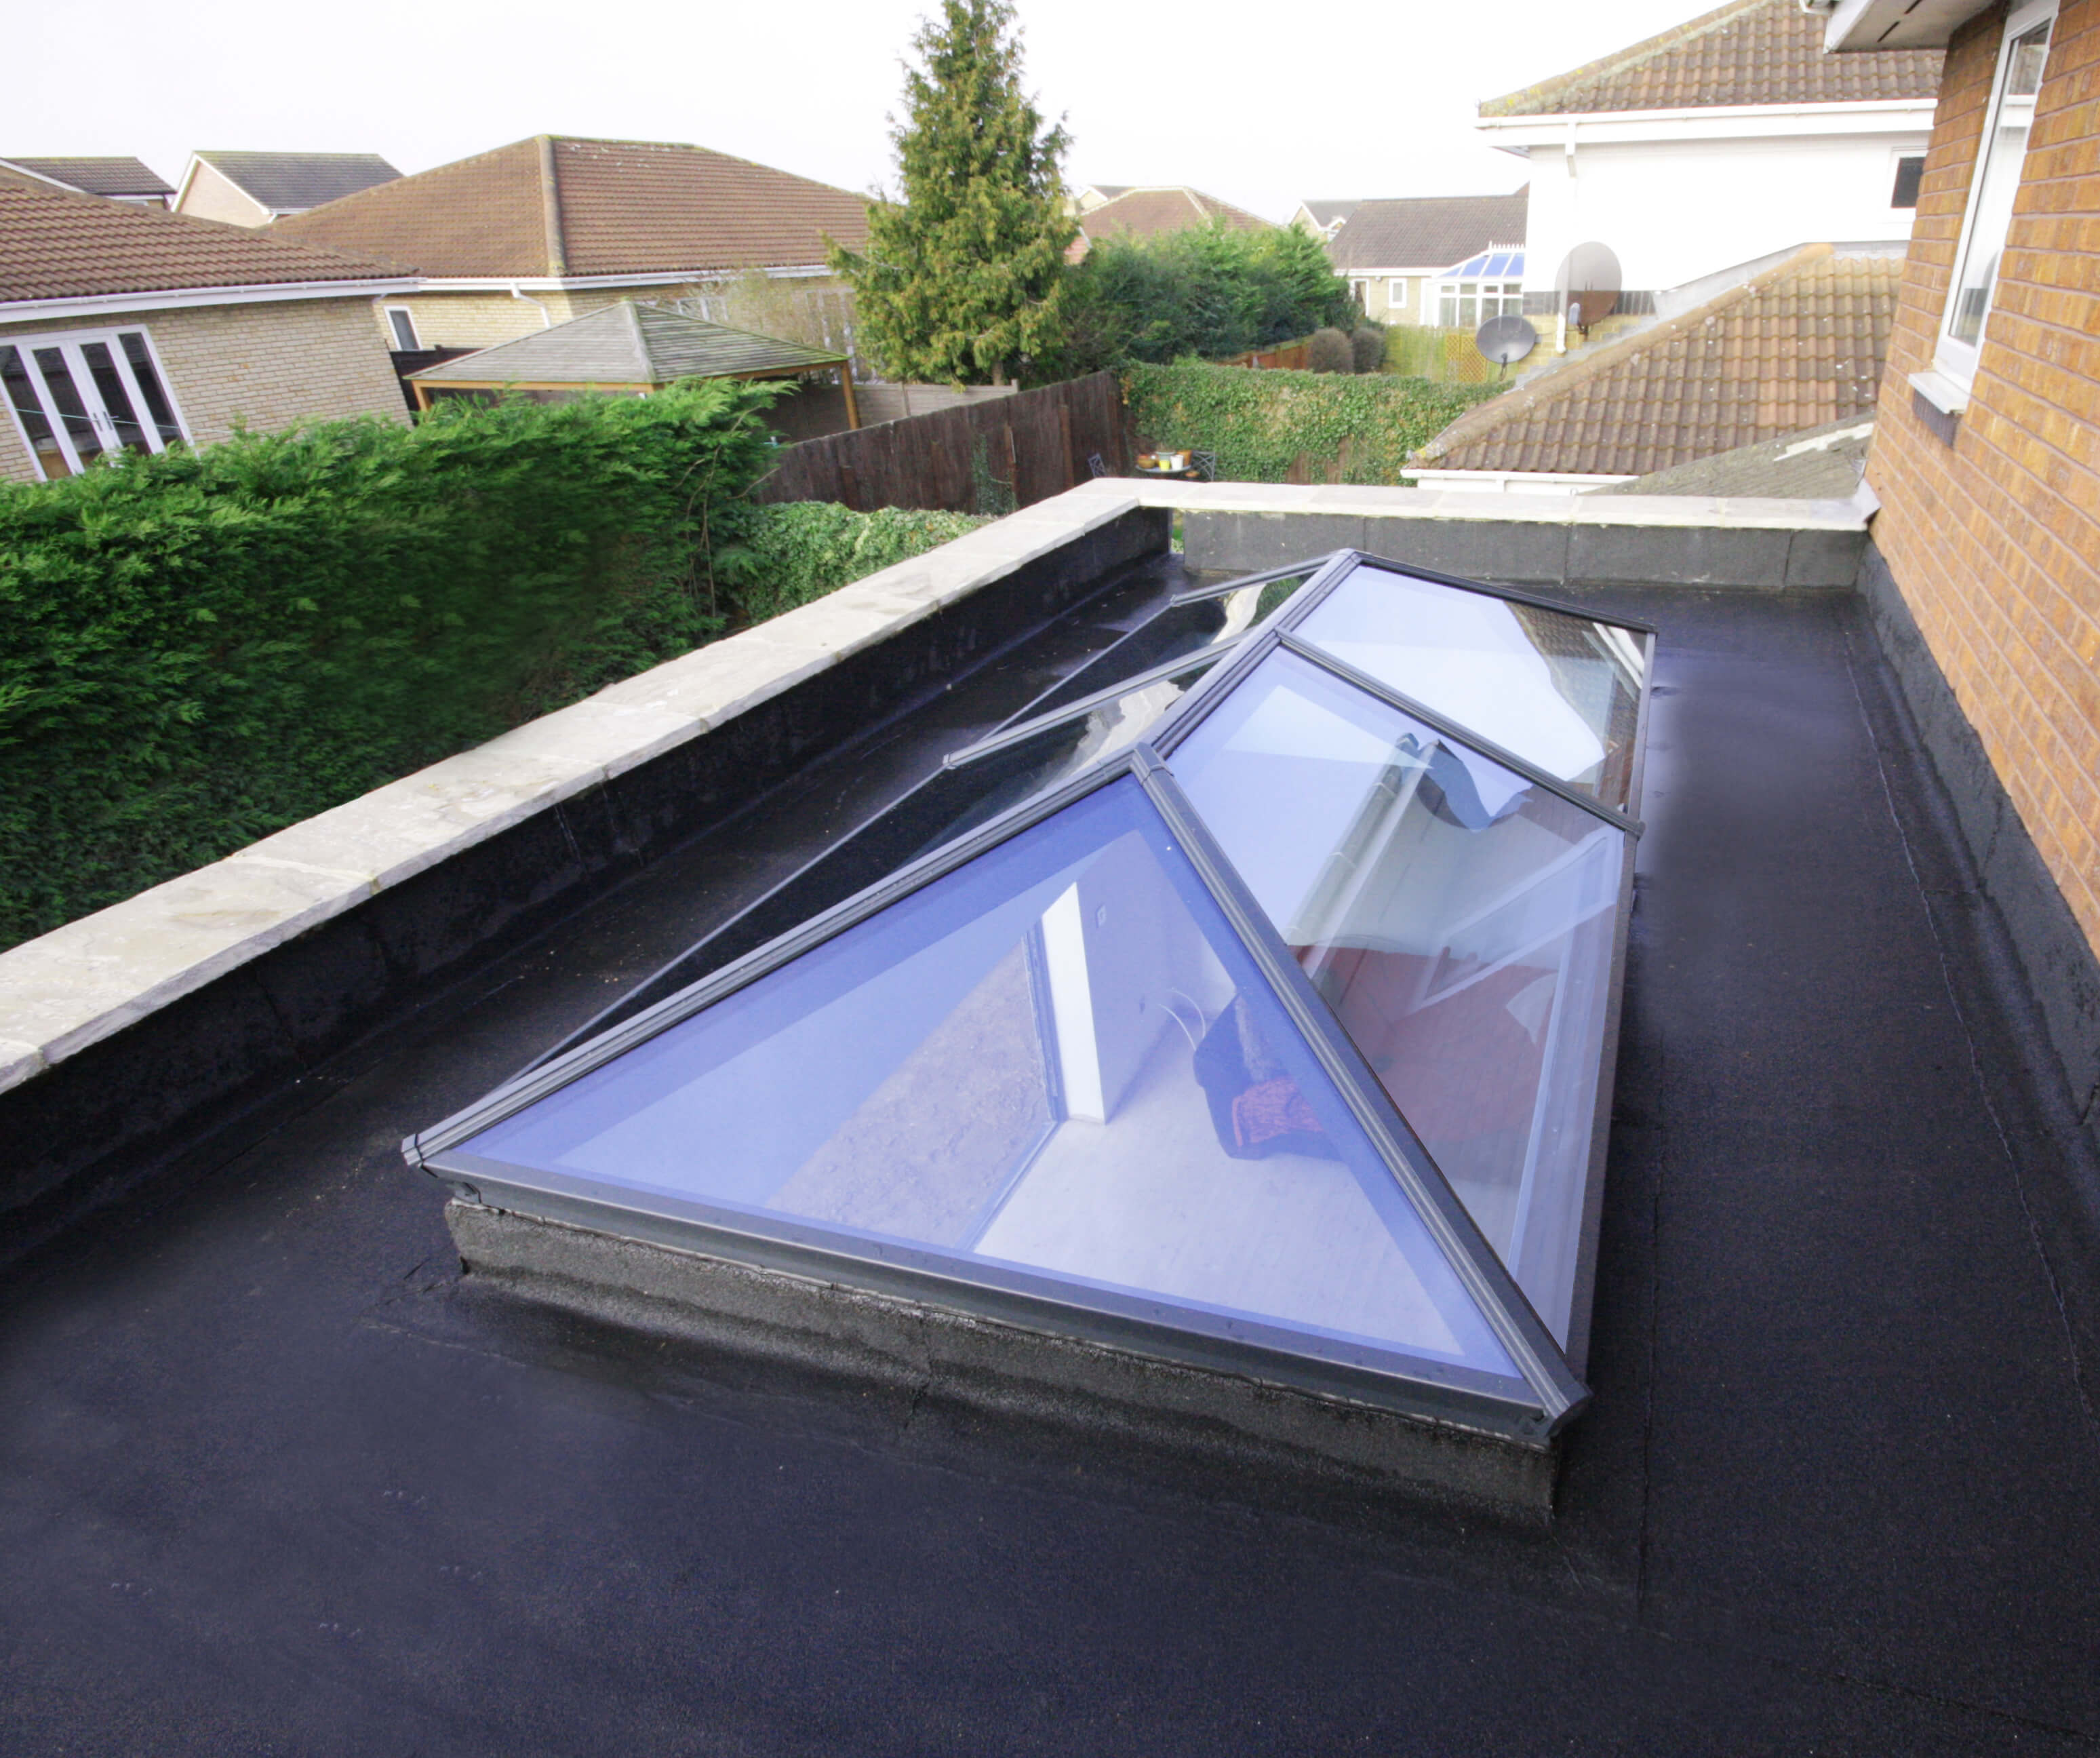 Slim Aluminium Roof Lantern Bournemouth